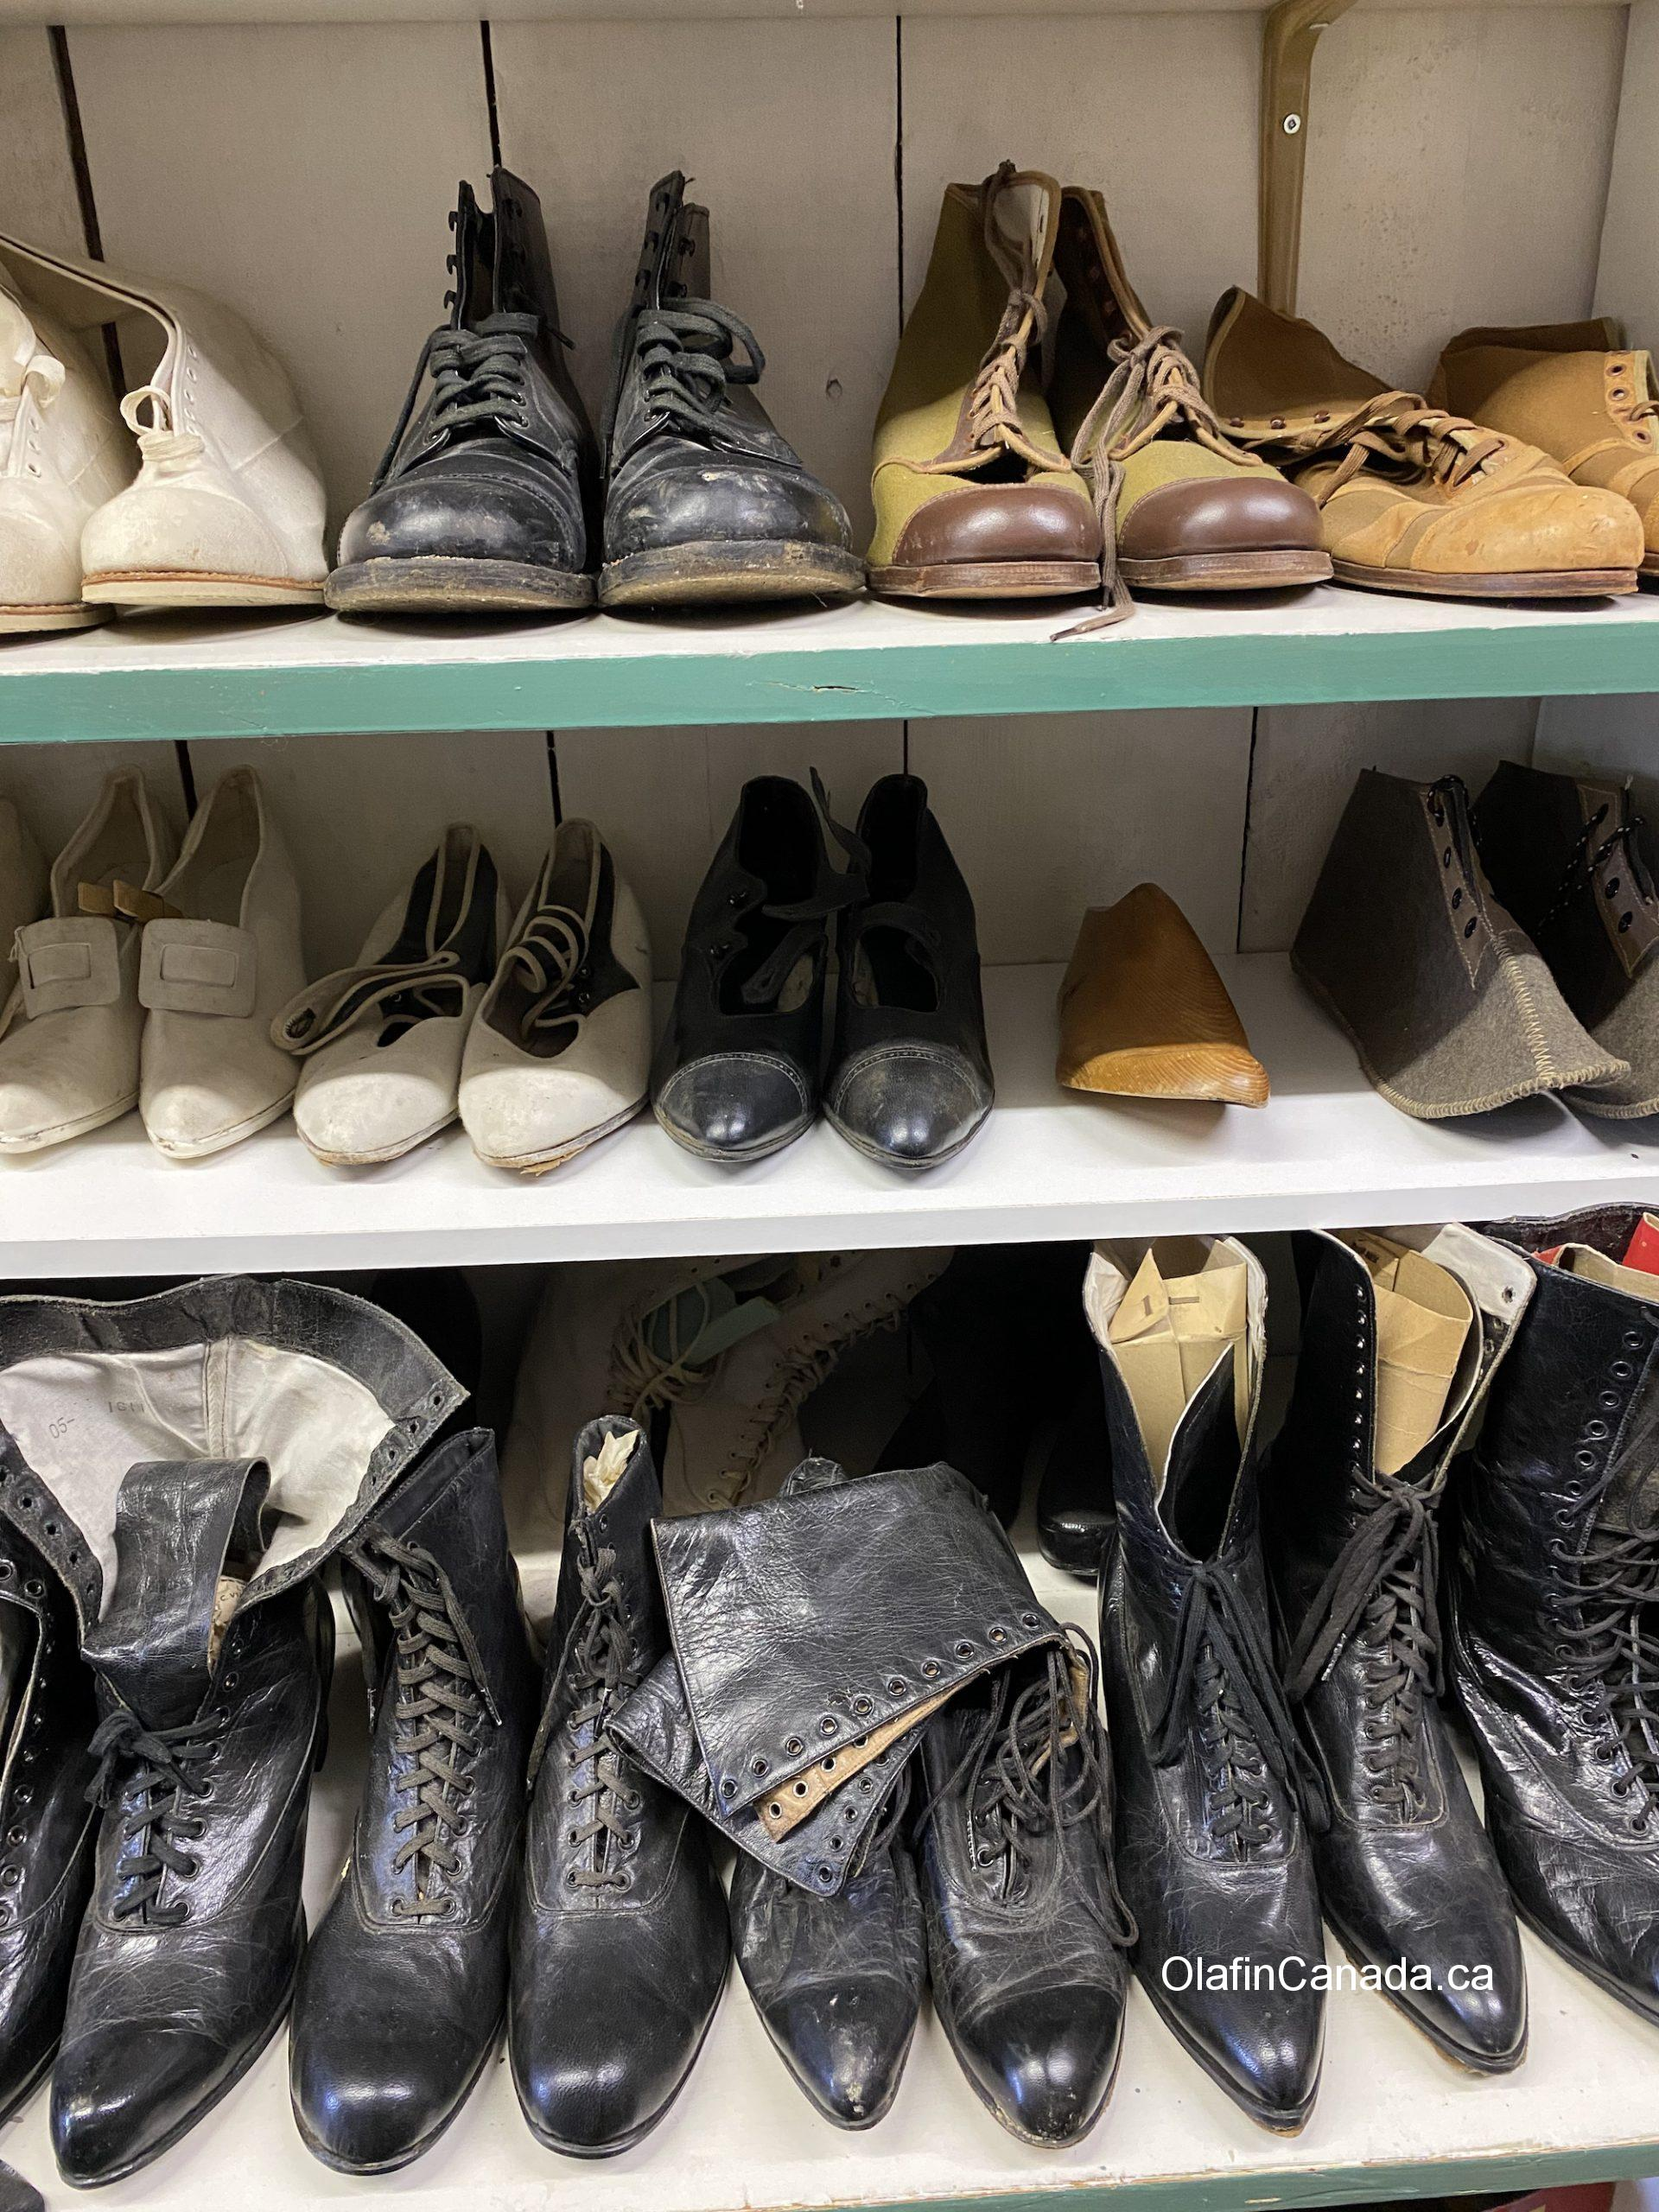 Shoes from the past at the General Store in 153 Mile House #olafincanada #britishcolumbia #discoverbc #abandonedbc #153milehouse #generalstore #backintime